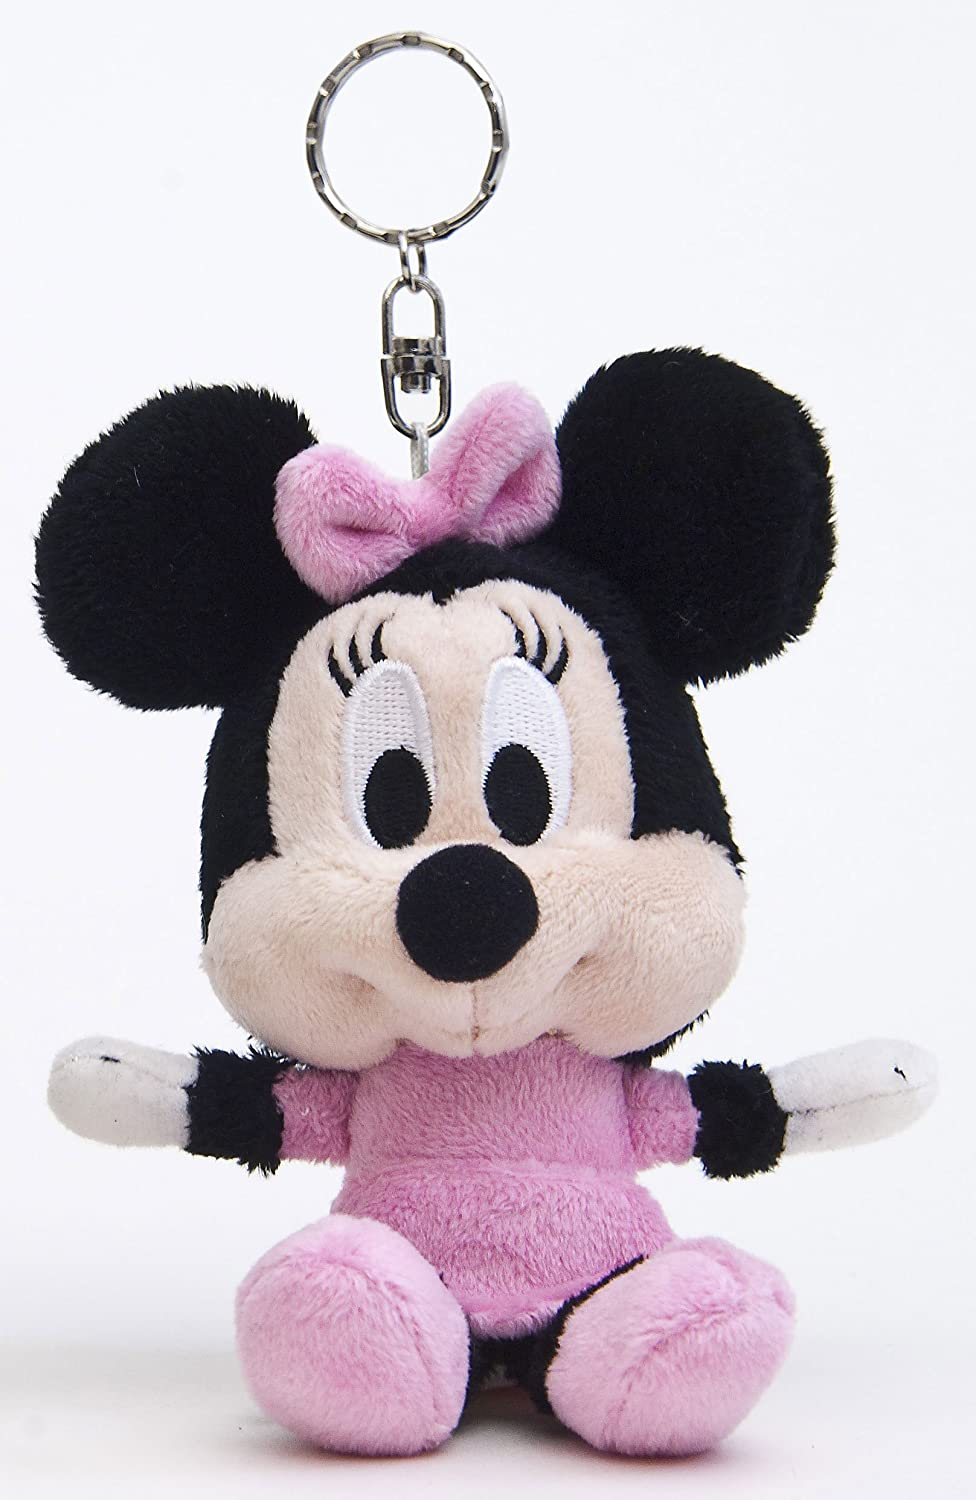 Mickey & Friends 900750 - Llavero de Minnie de peluche (10 ...